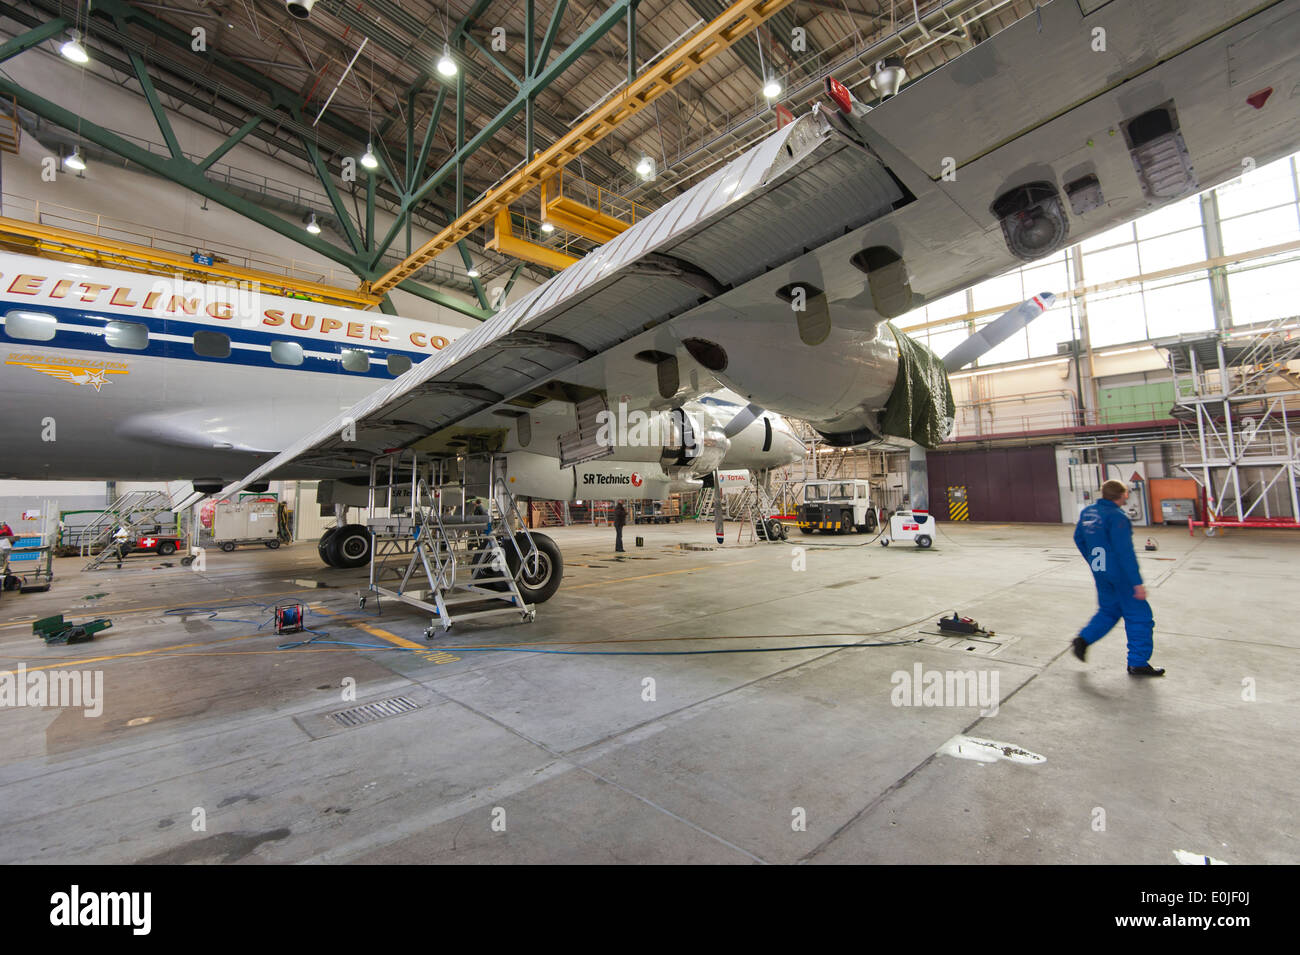 "Historique de l'avion de passagers Lockheed Super Constellation L-1049 'HB-RSC"" pendant l'entretien dans un hangar à Zurich/Kloten. Photo Stock"